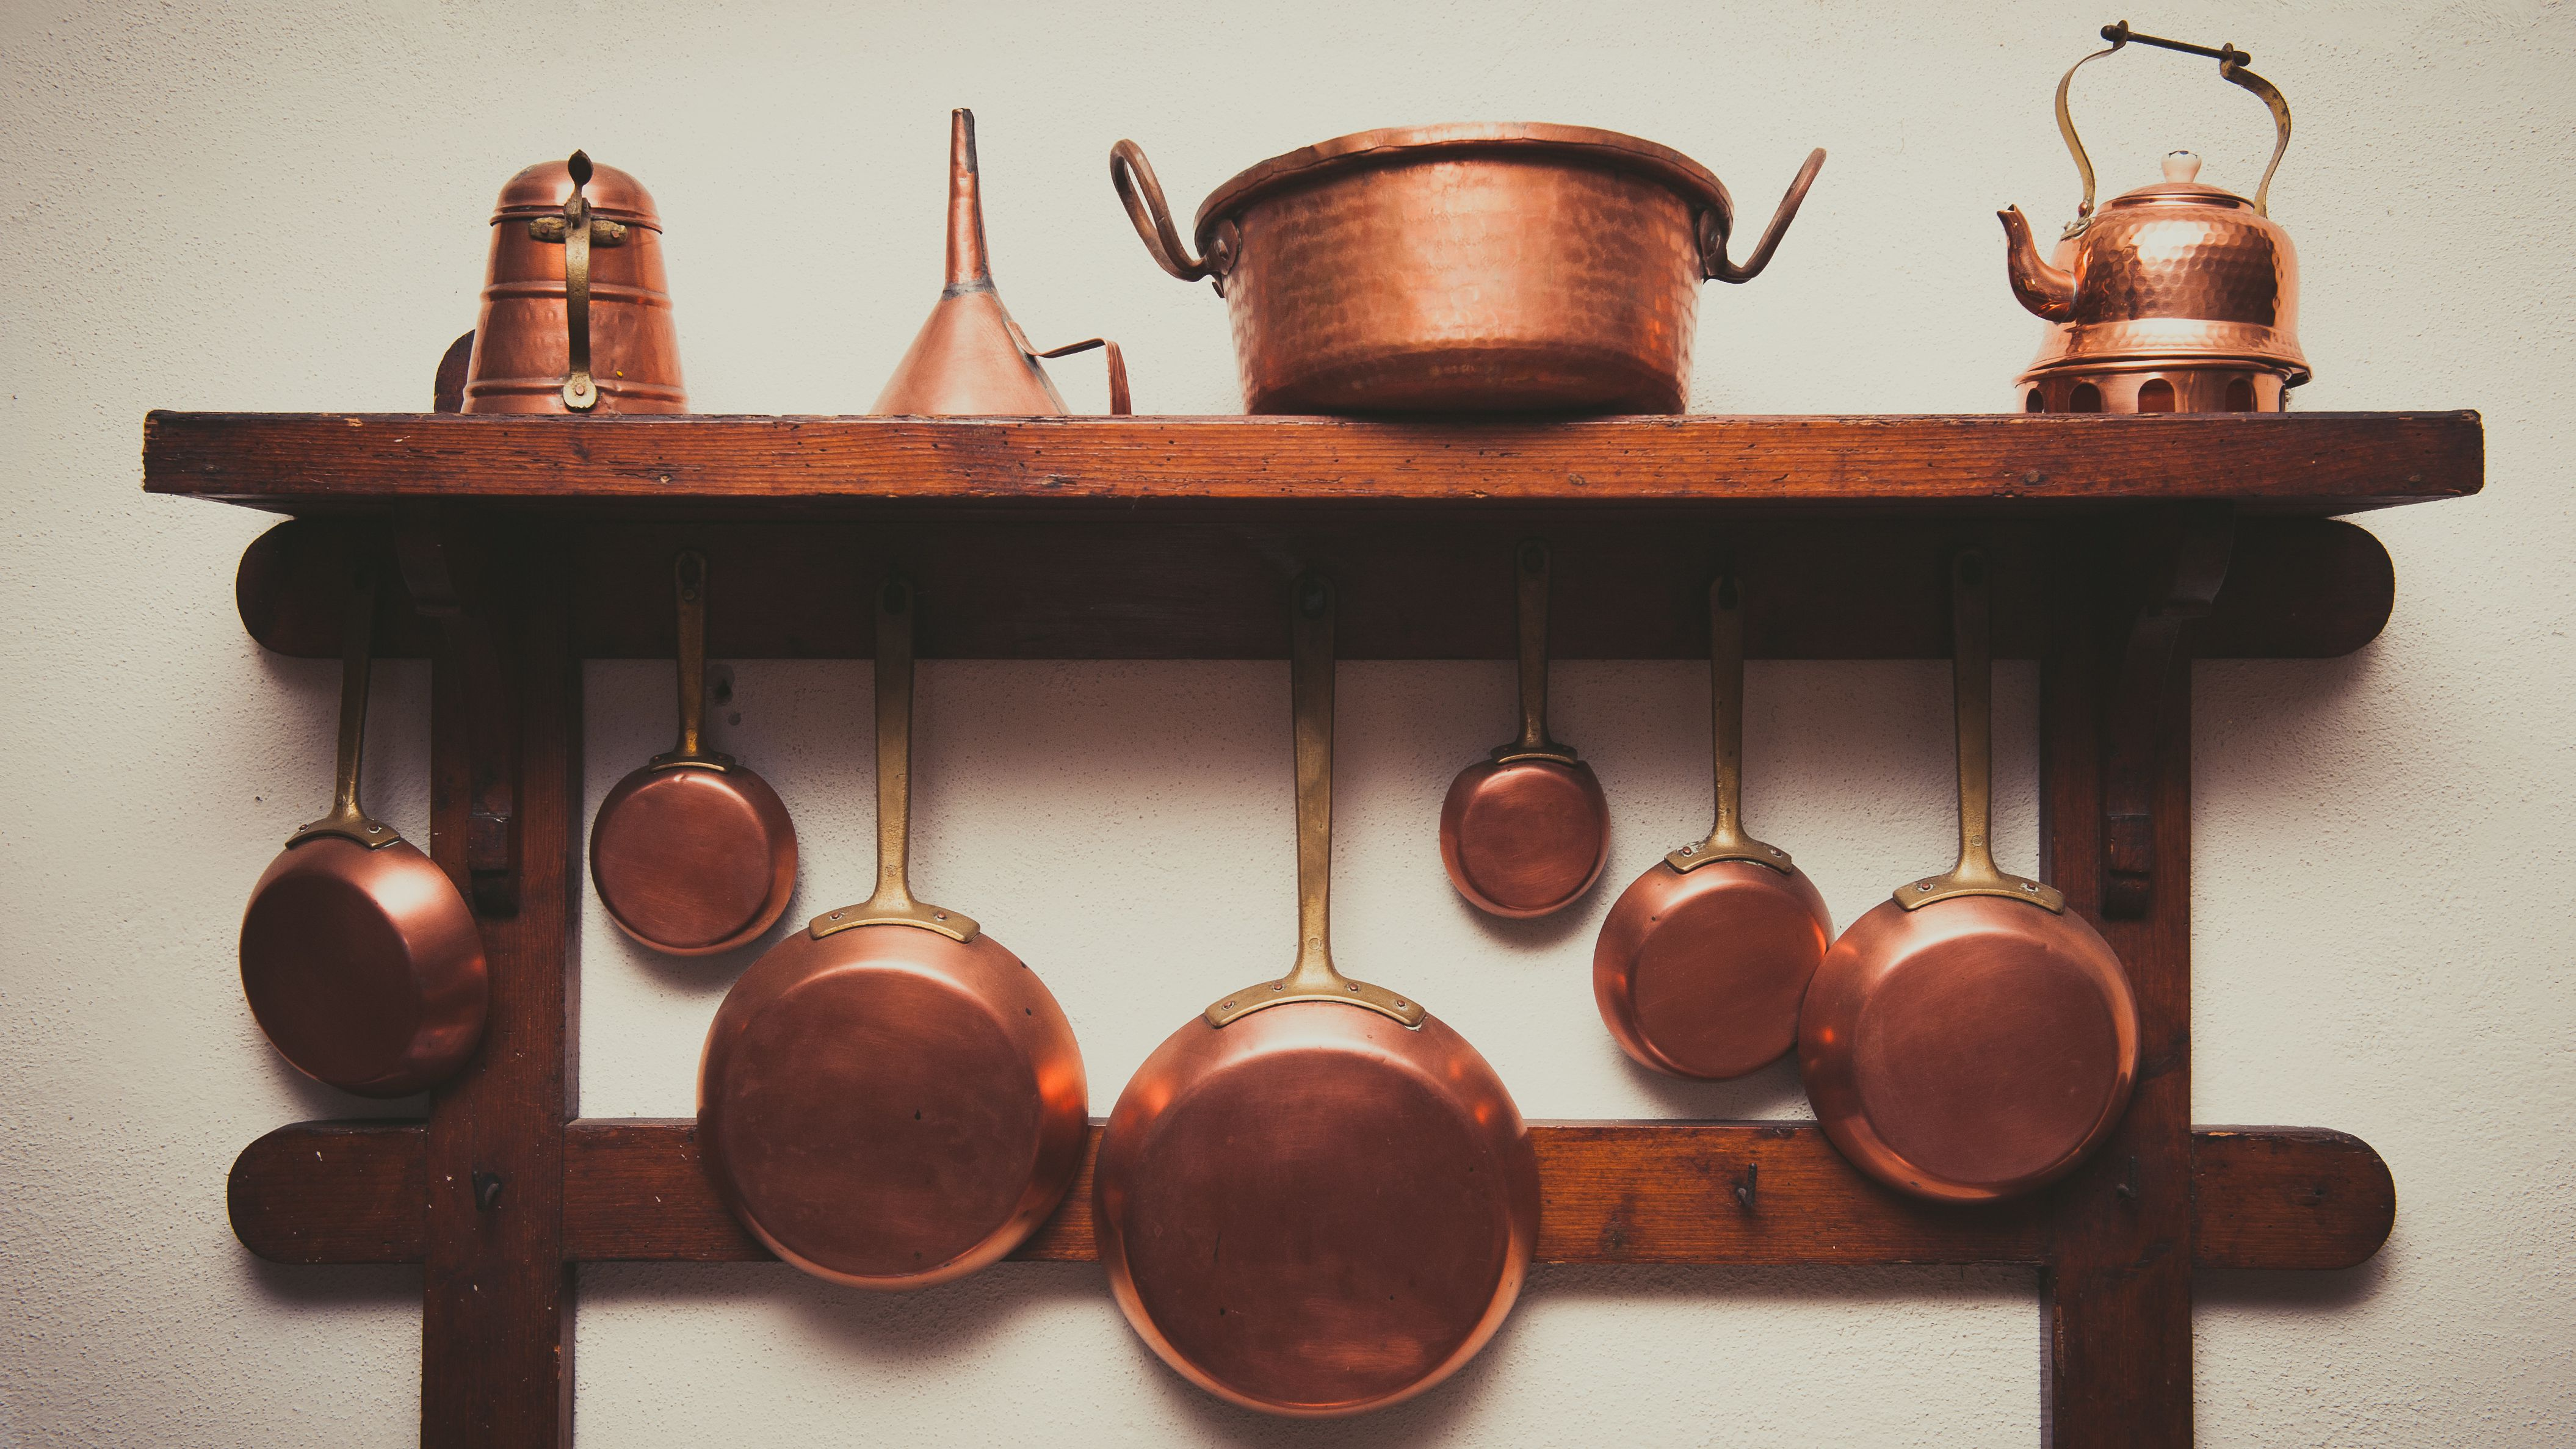 3 Ways to Remove Lacquer From Copper Cookware and Decor